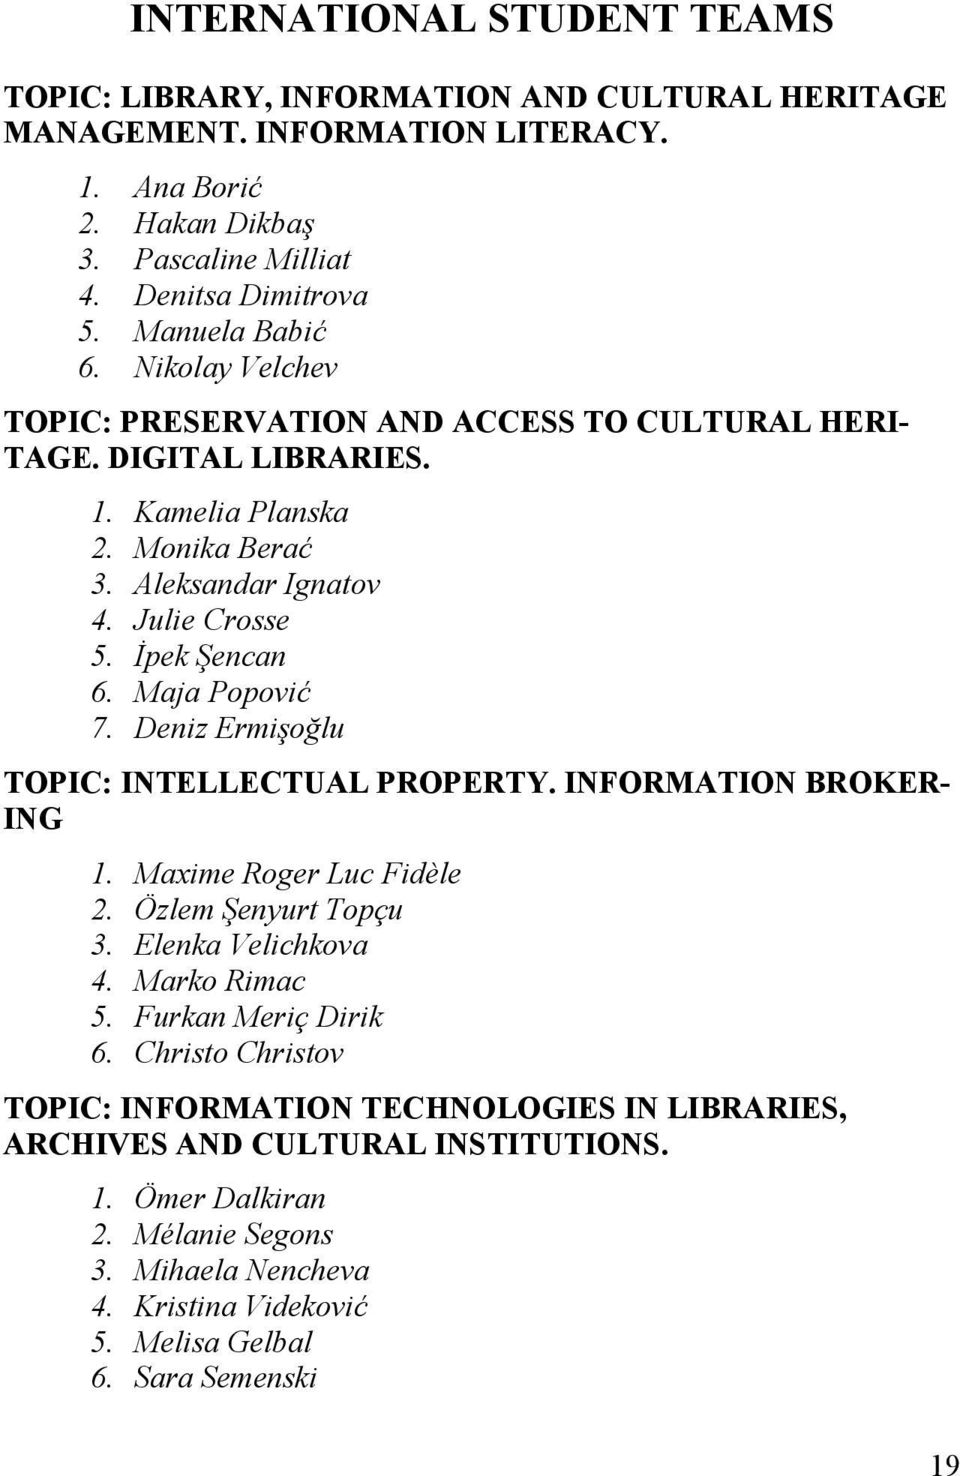 Maja Popović 7. Deniz Ermişoğlu TOPIC: INTELLECTUAL PROPERTY. INFORMATION BROKER- ING 1. Maxime Roger Luc Fidèle 2. Özlem Şenyurt Topçu 3. Elenka Velichkova 4. Marko Rimac 5. Furkan Meriç Dirik 6.